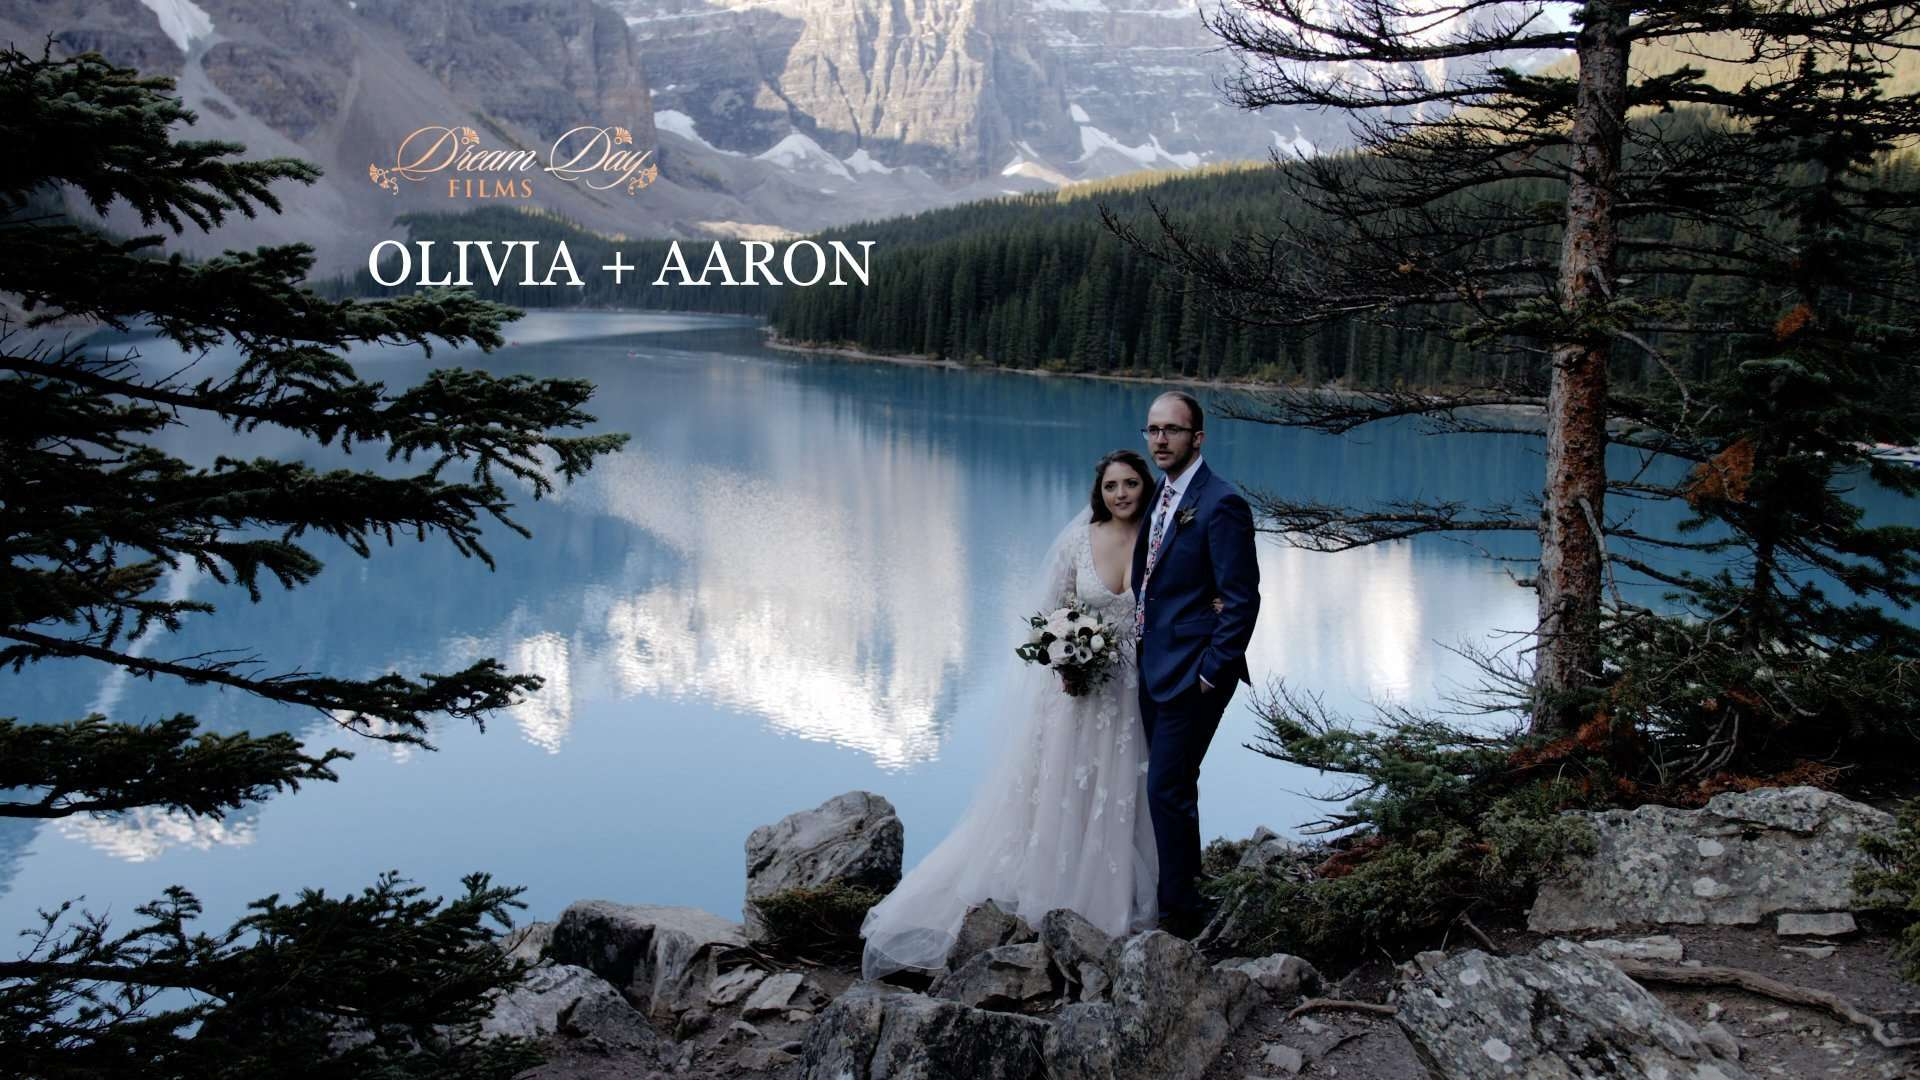 moraine lake image to overlay Aaron and Olivia's wedding video